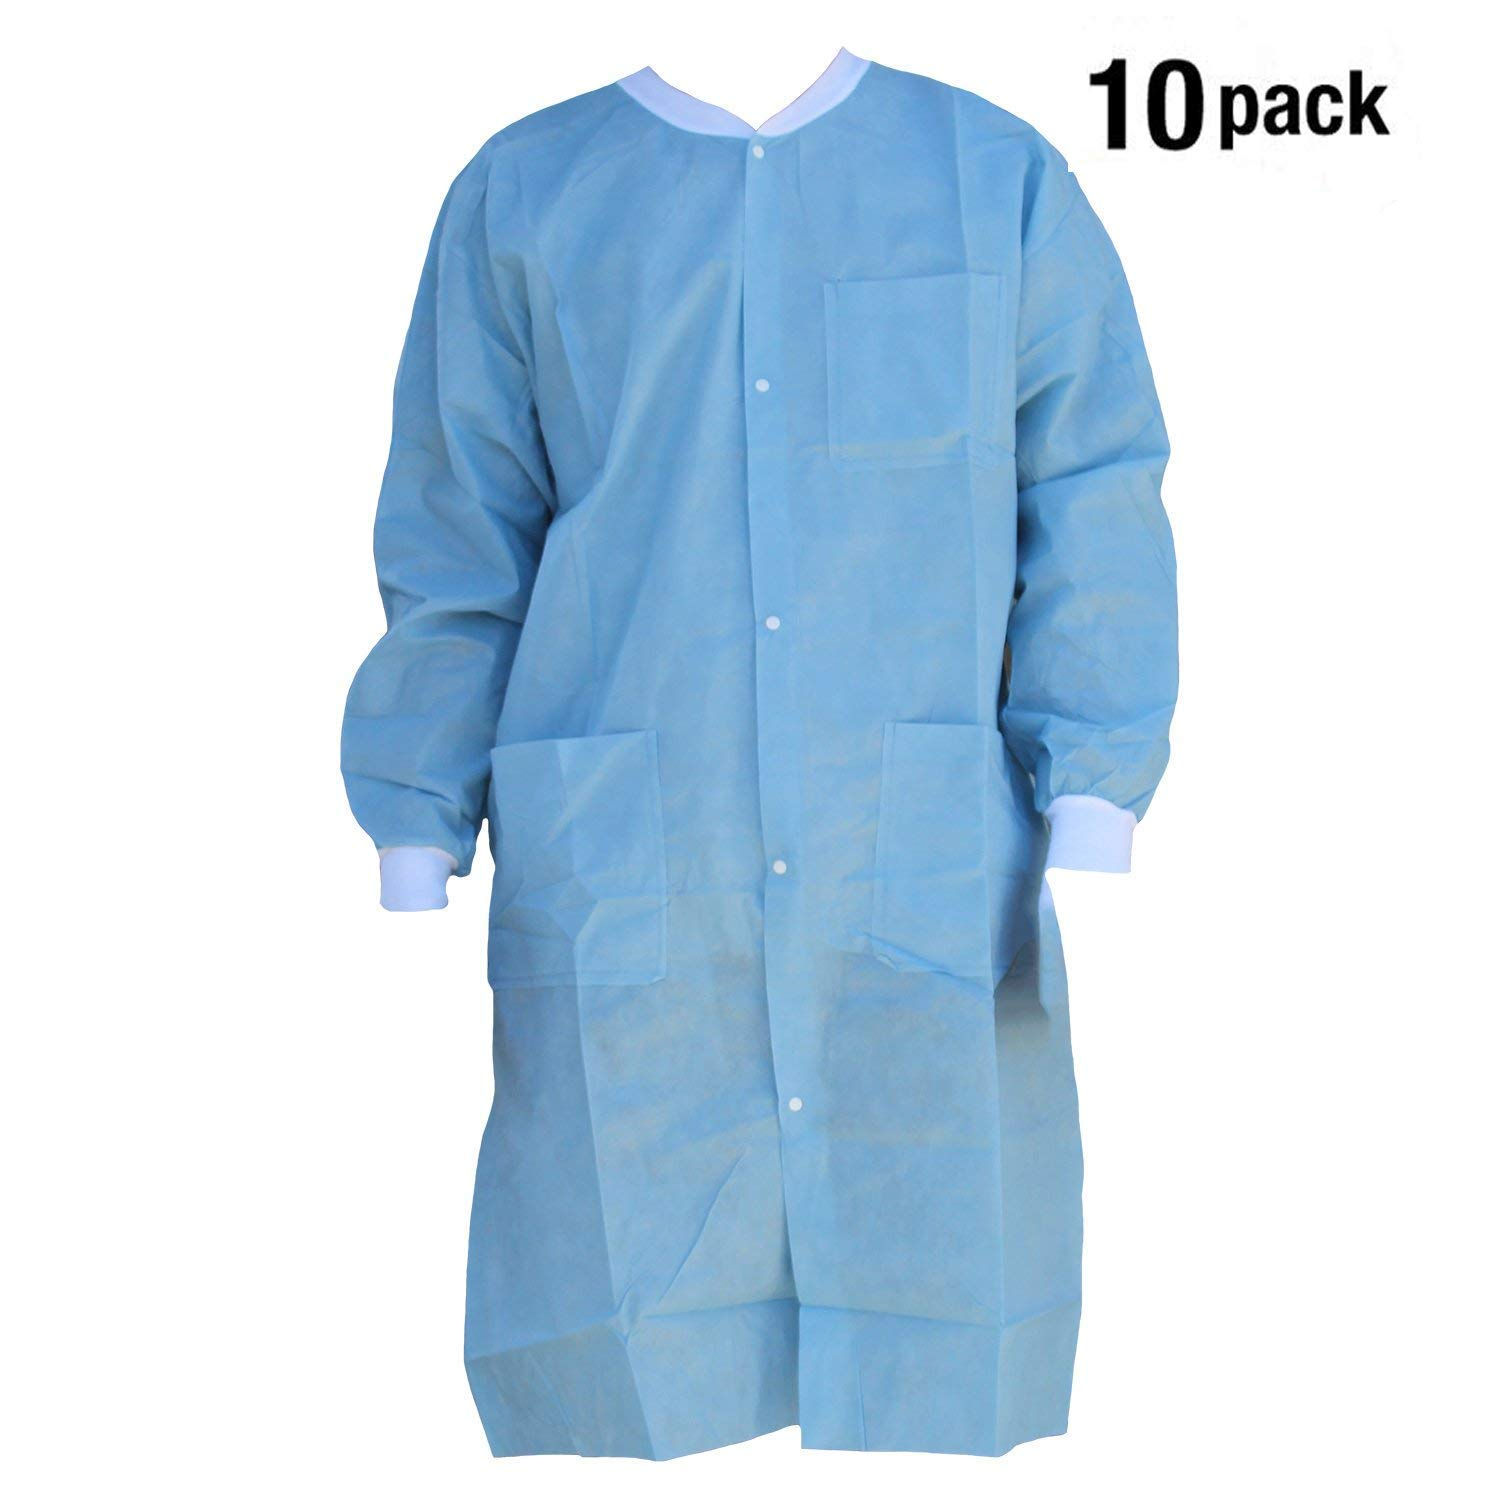 Vivid Professional Lab Coat for Laboratory with 5 Button Closure, Ceil Blue, Pack of 10 (Medium, Ceil Blue) Pearson Dental Supply W410028